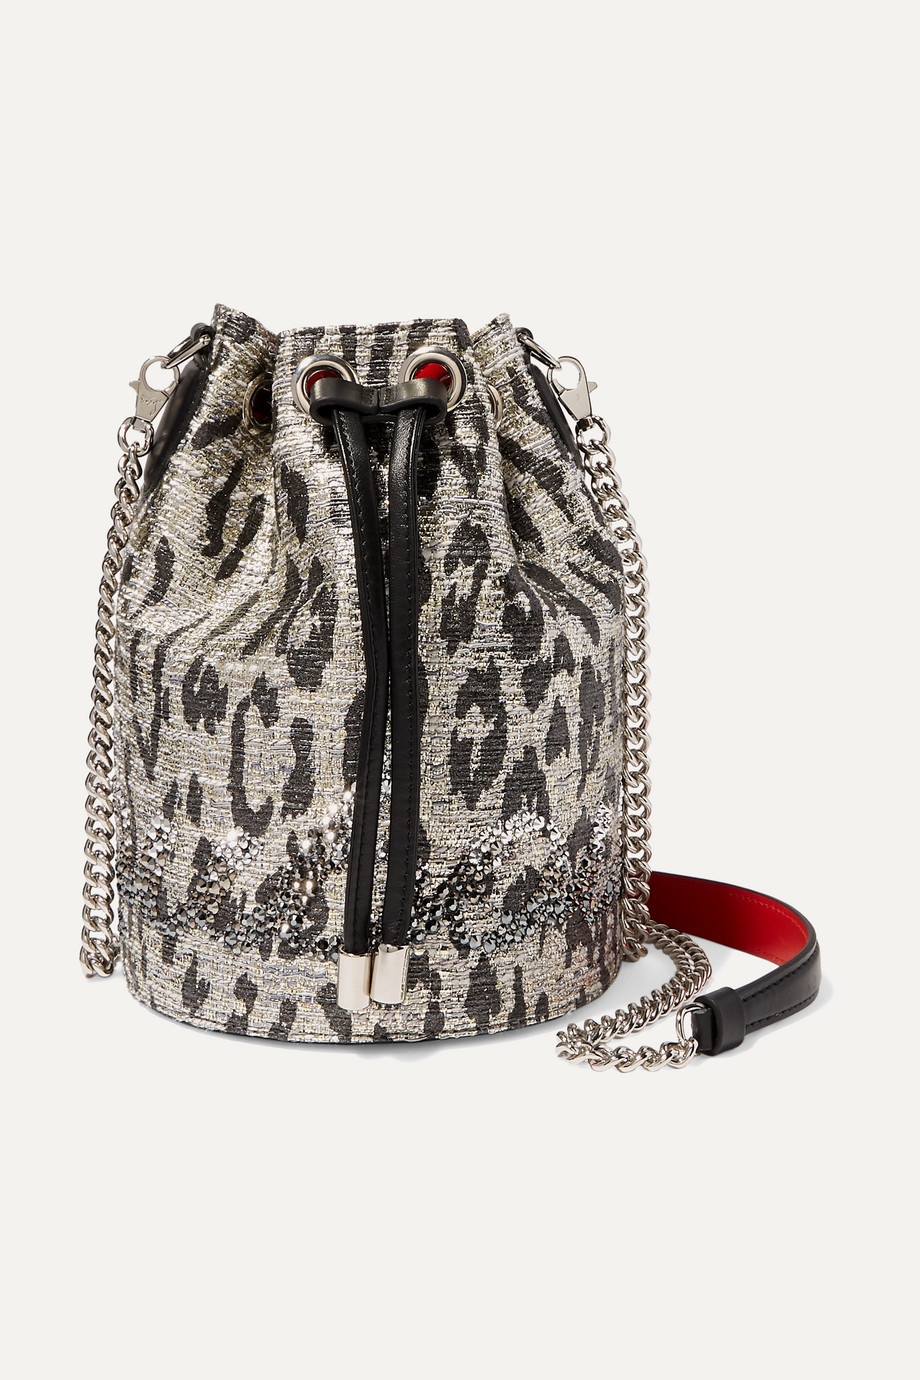 Christian Louboutin Marie Jane leather-trimmed crystal-embellished metallic tweed bucket bag